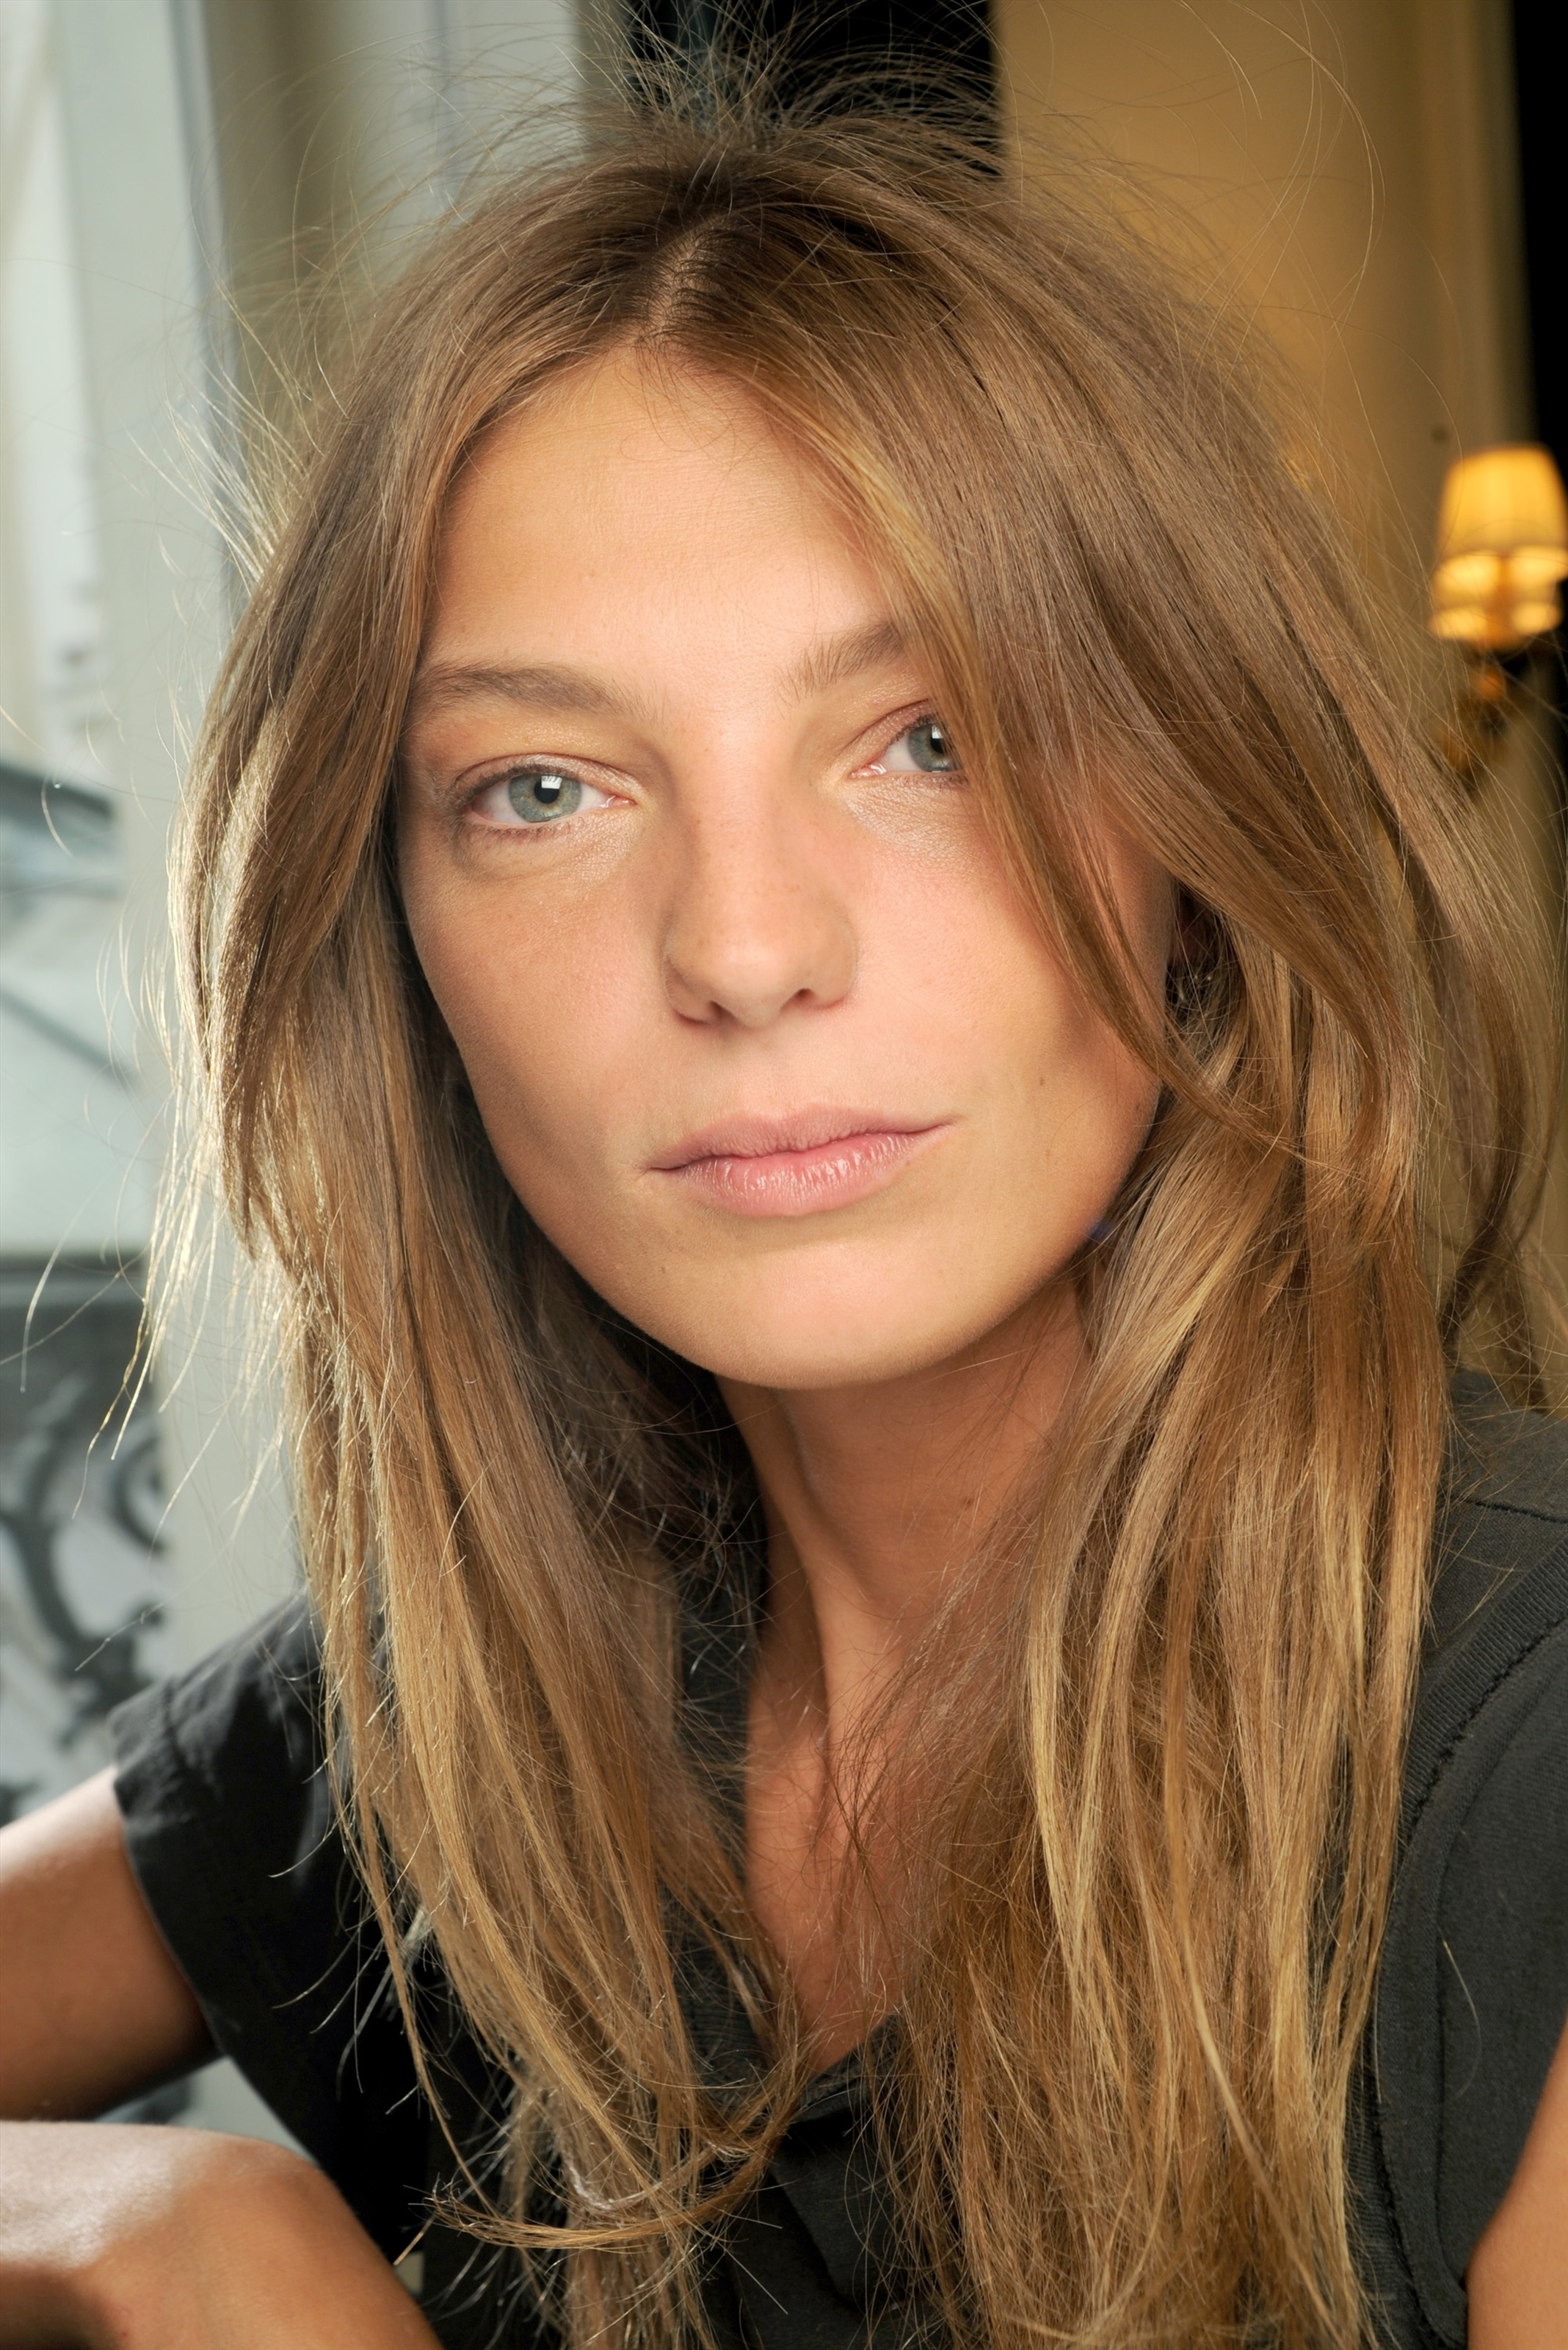 The 33-year old daughter of father (?) and mother(?), 180 cm tall Daria Werbowy in 2017 photo